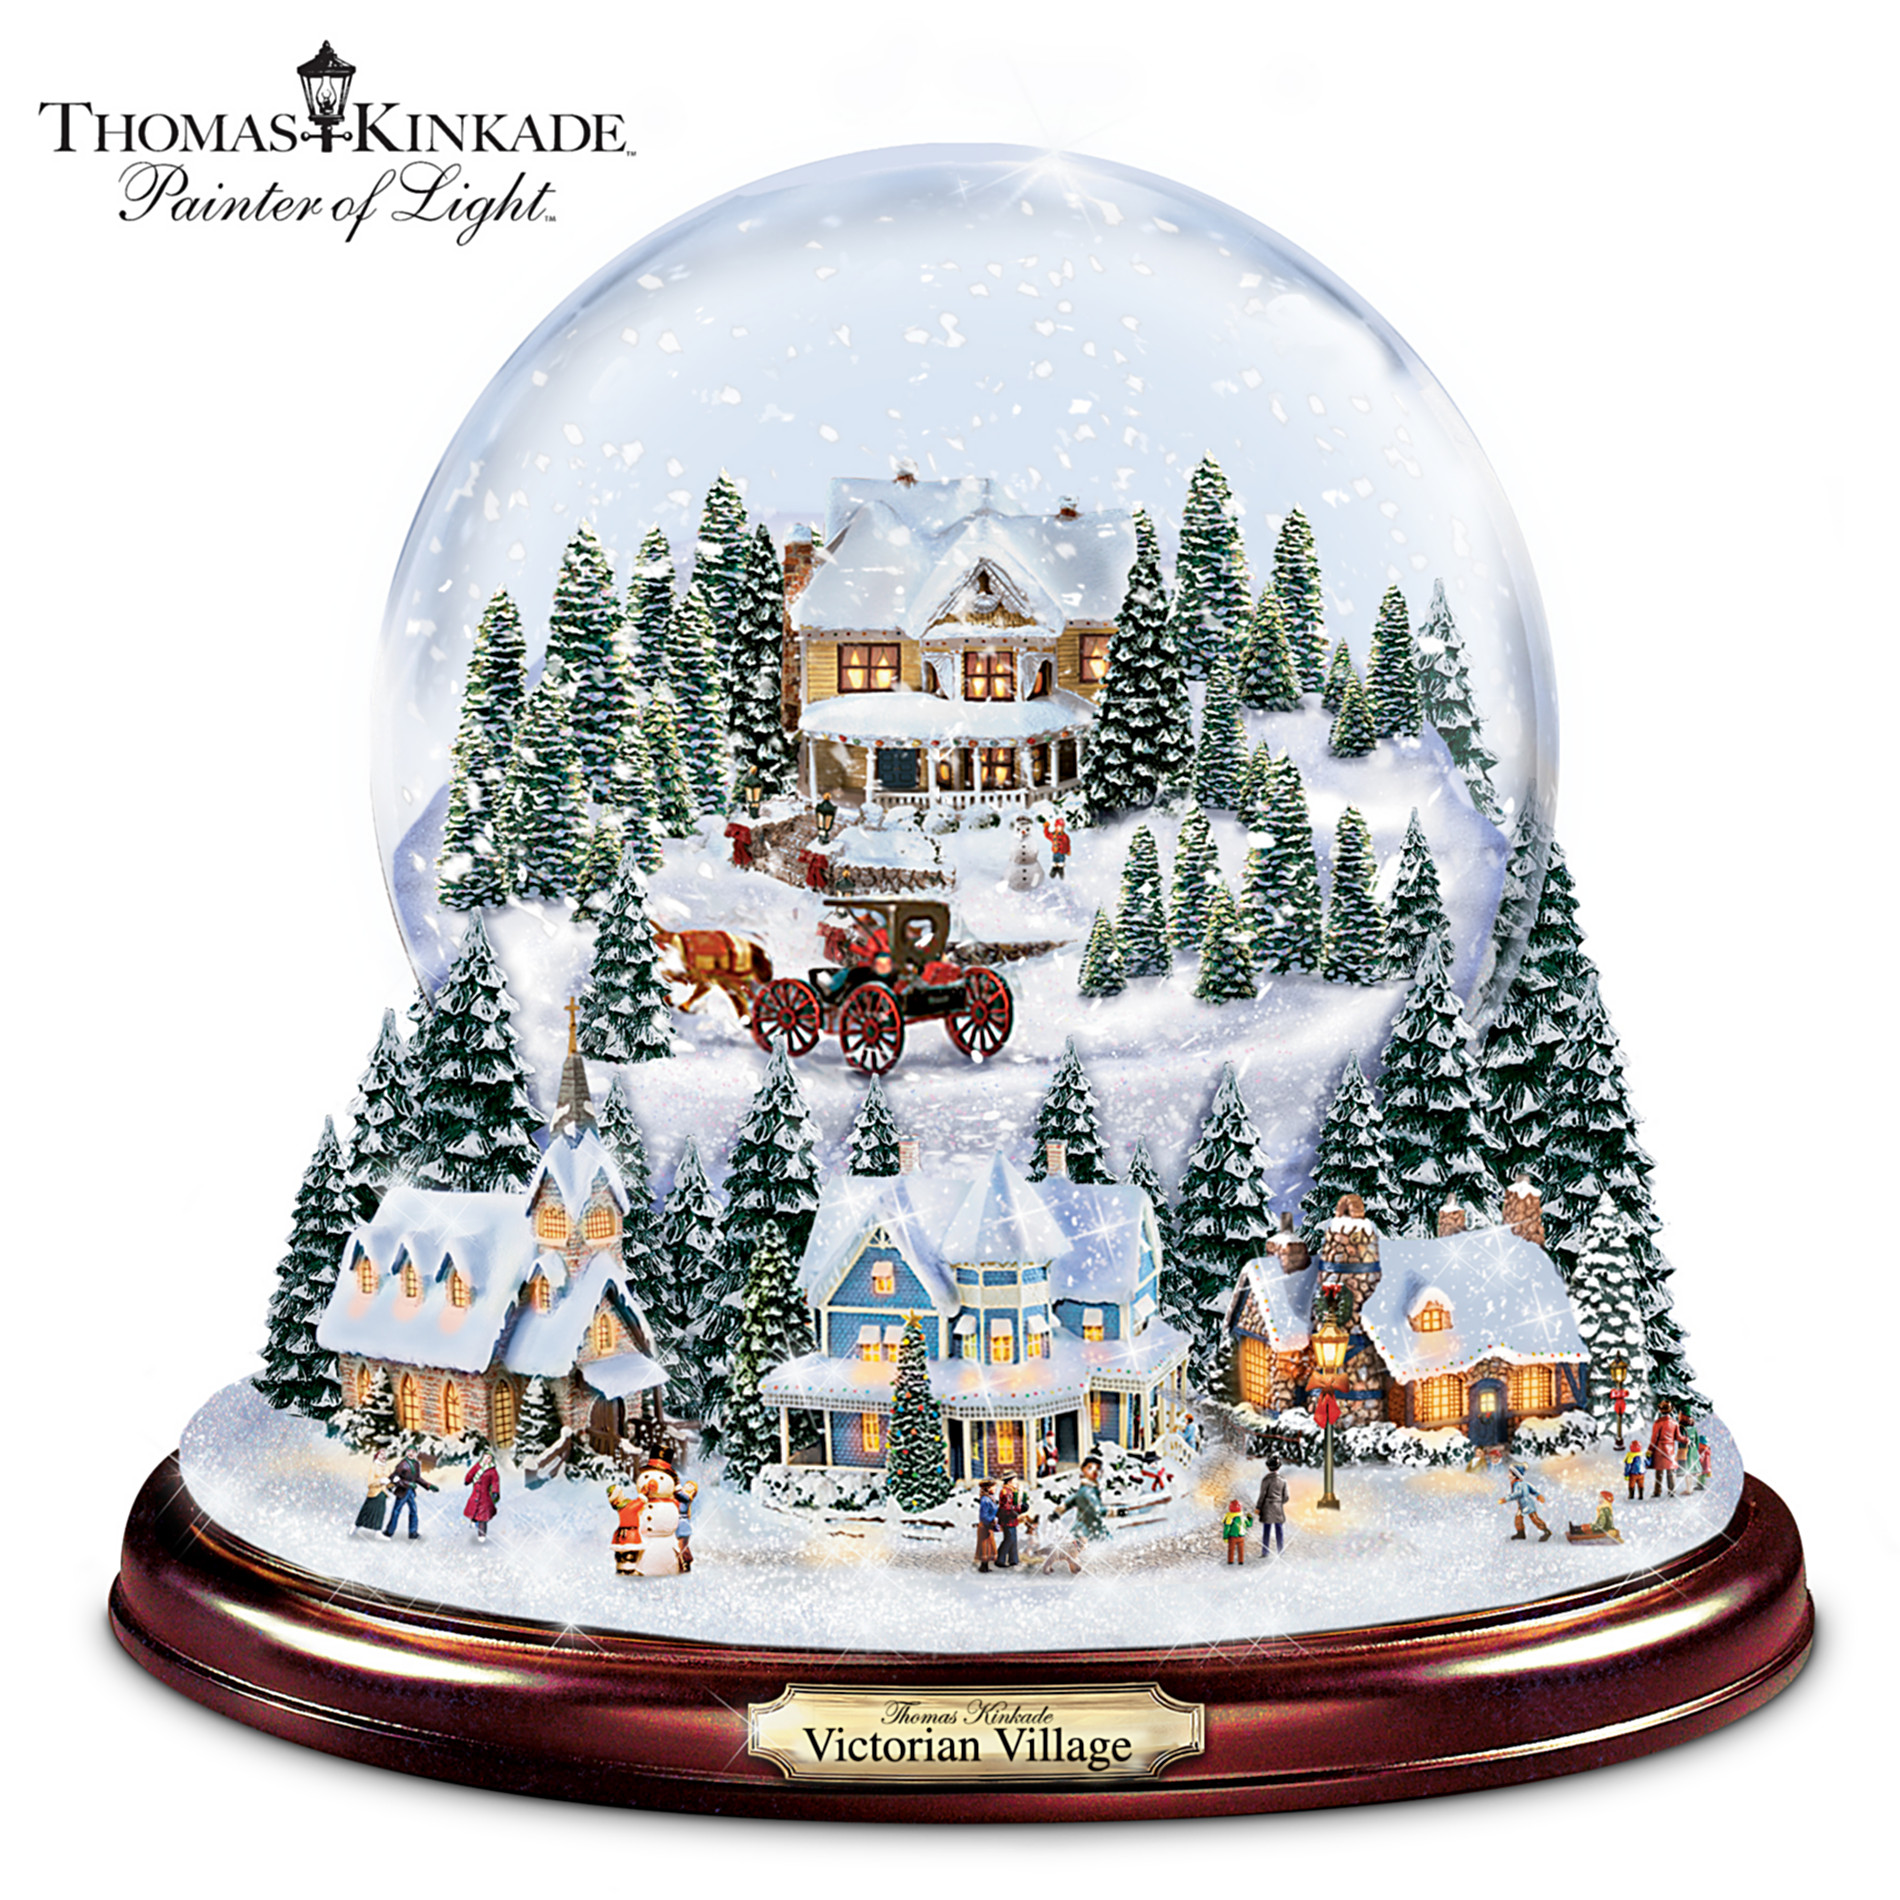 The Bradford Exchange Thomas Kinkade Victorian Christmas Village Snowglobe at Sears.com